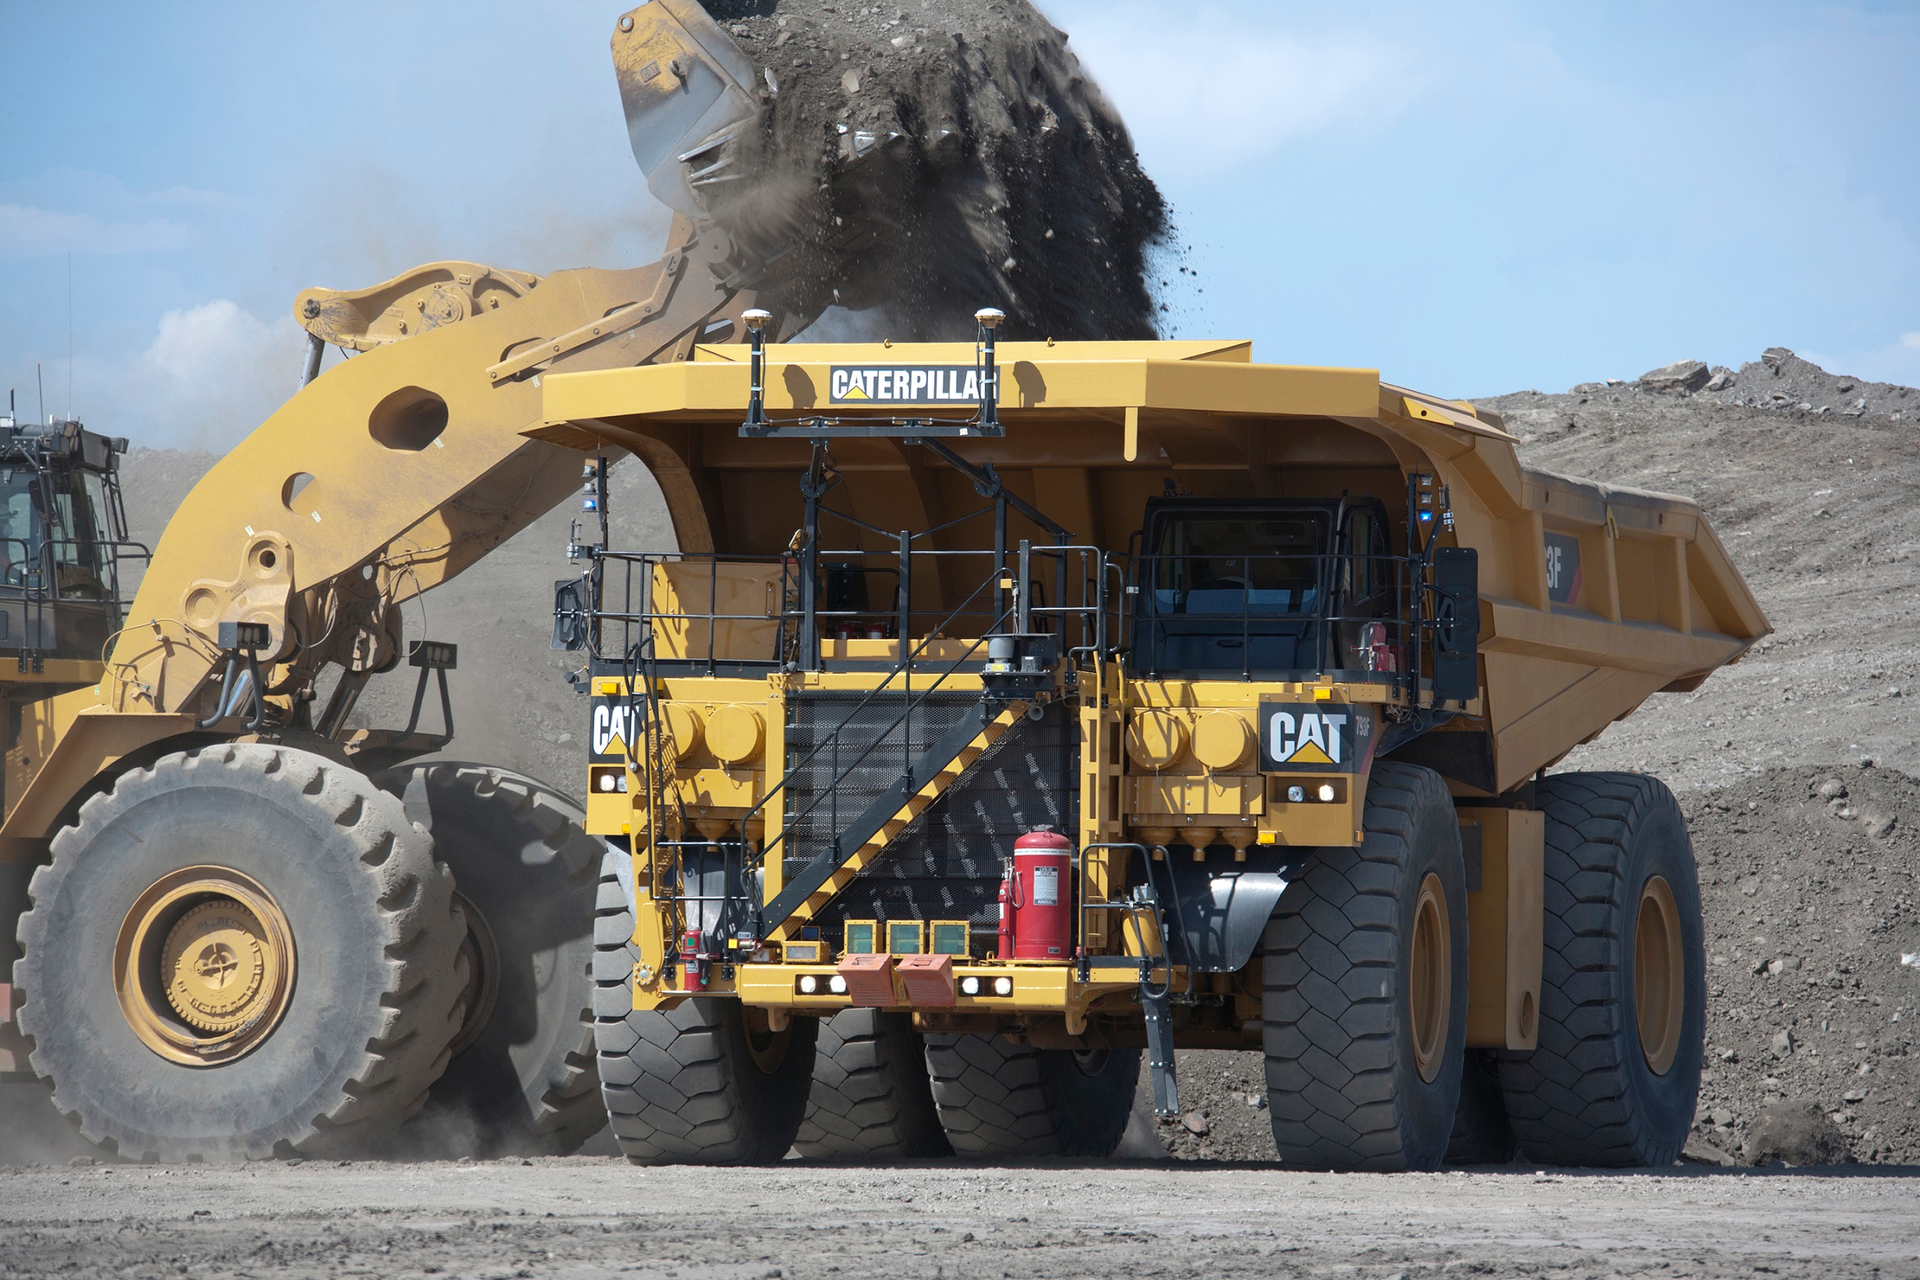 Work is underway to someday power these giant machines with batteries.